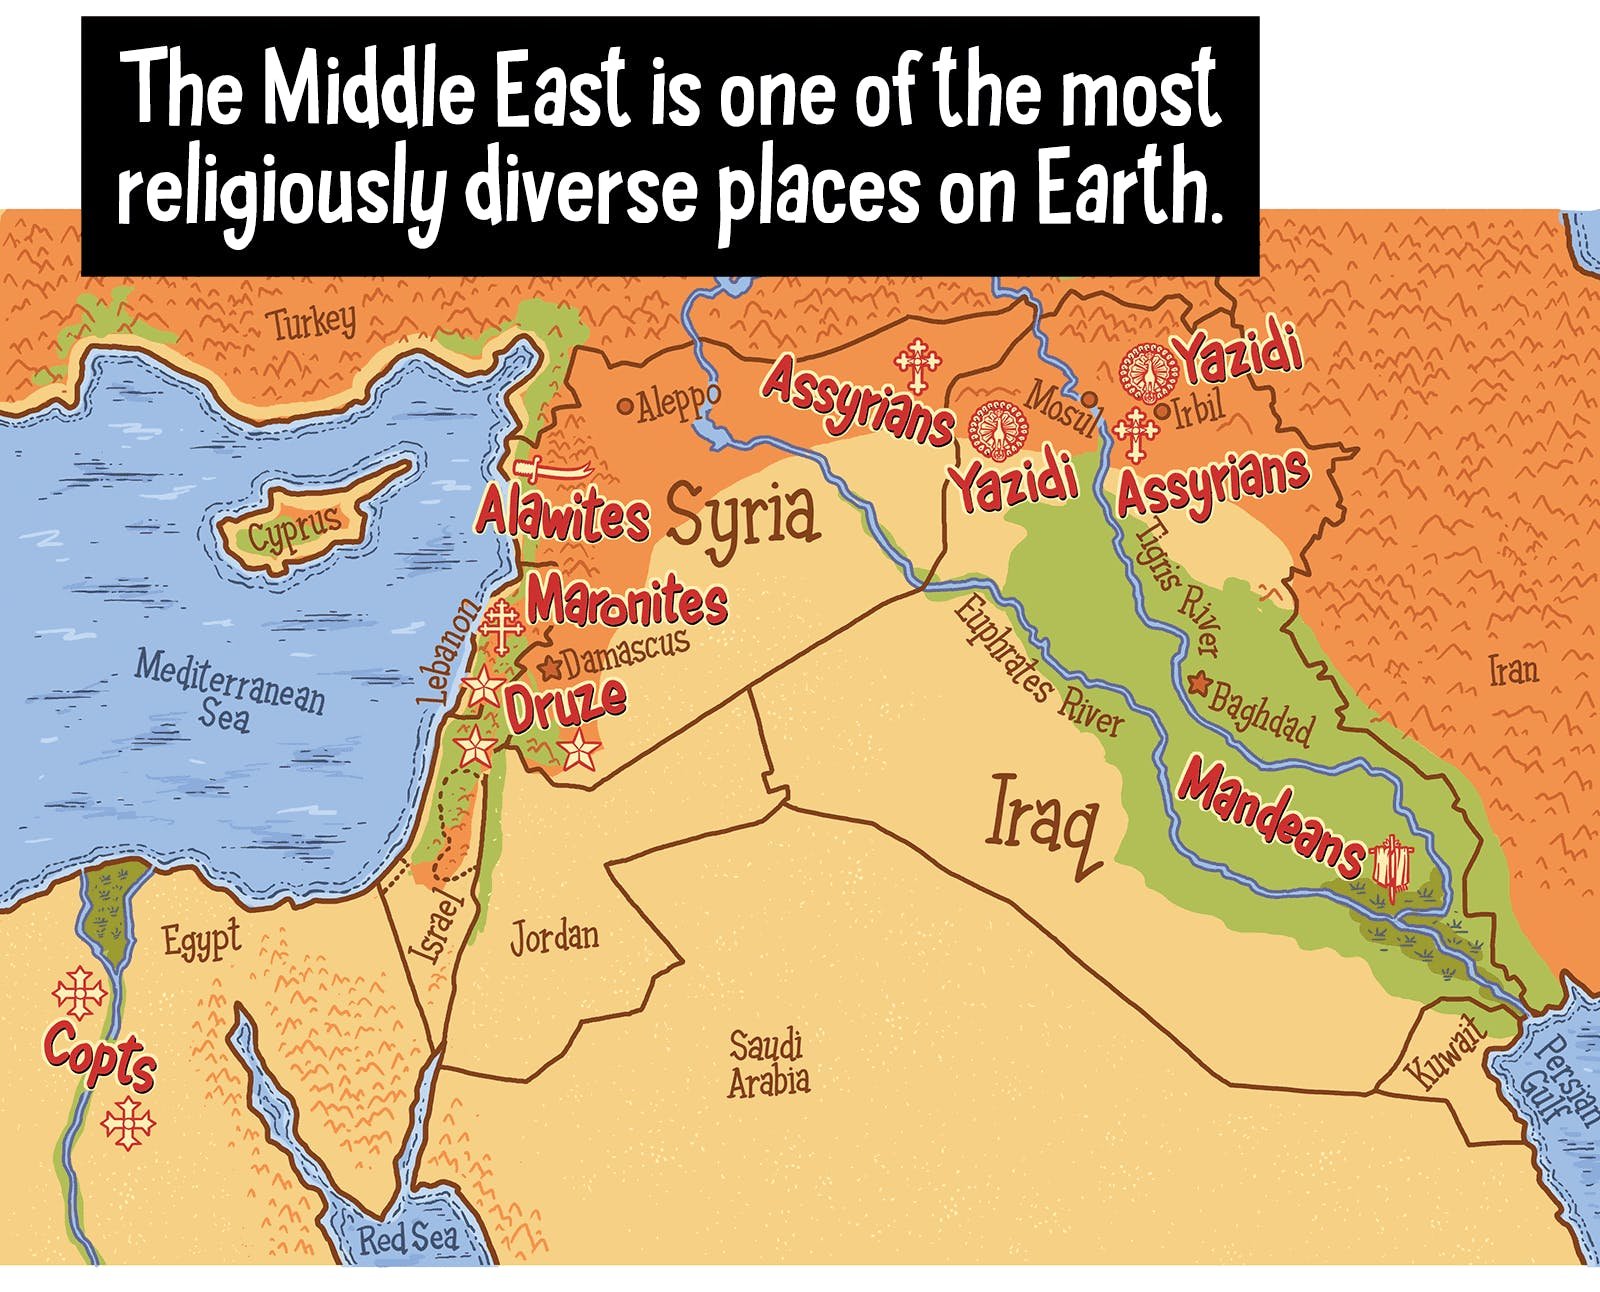 an introduction to the religions in the middle east Author sorenson, david s, 1943- author title an introduction to the modern middle east : history, religion, political economy, politics / david s sorenson.